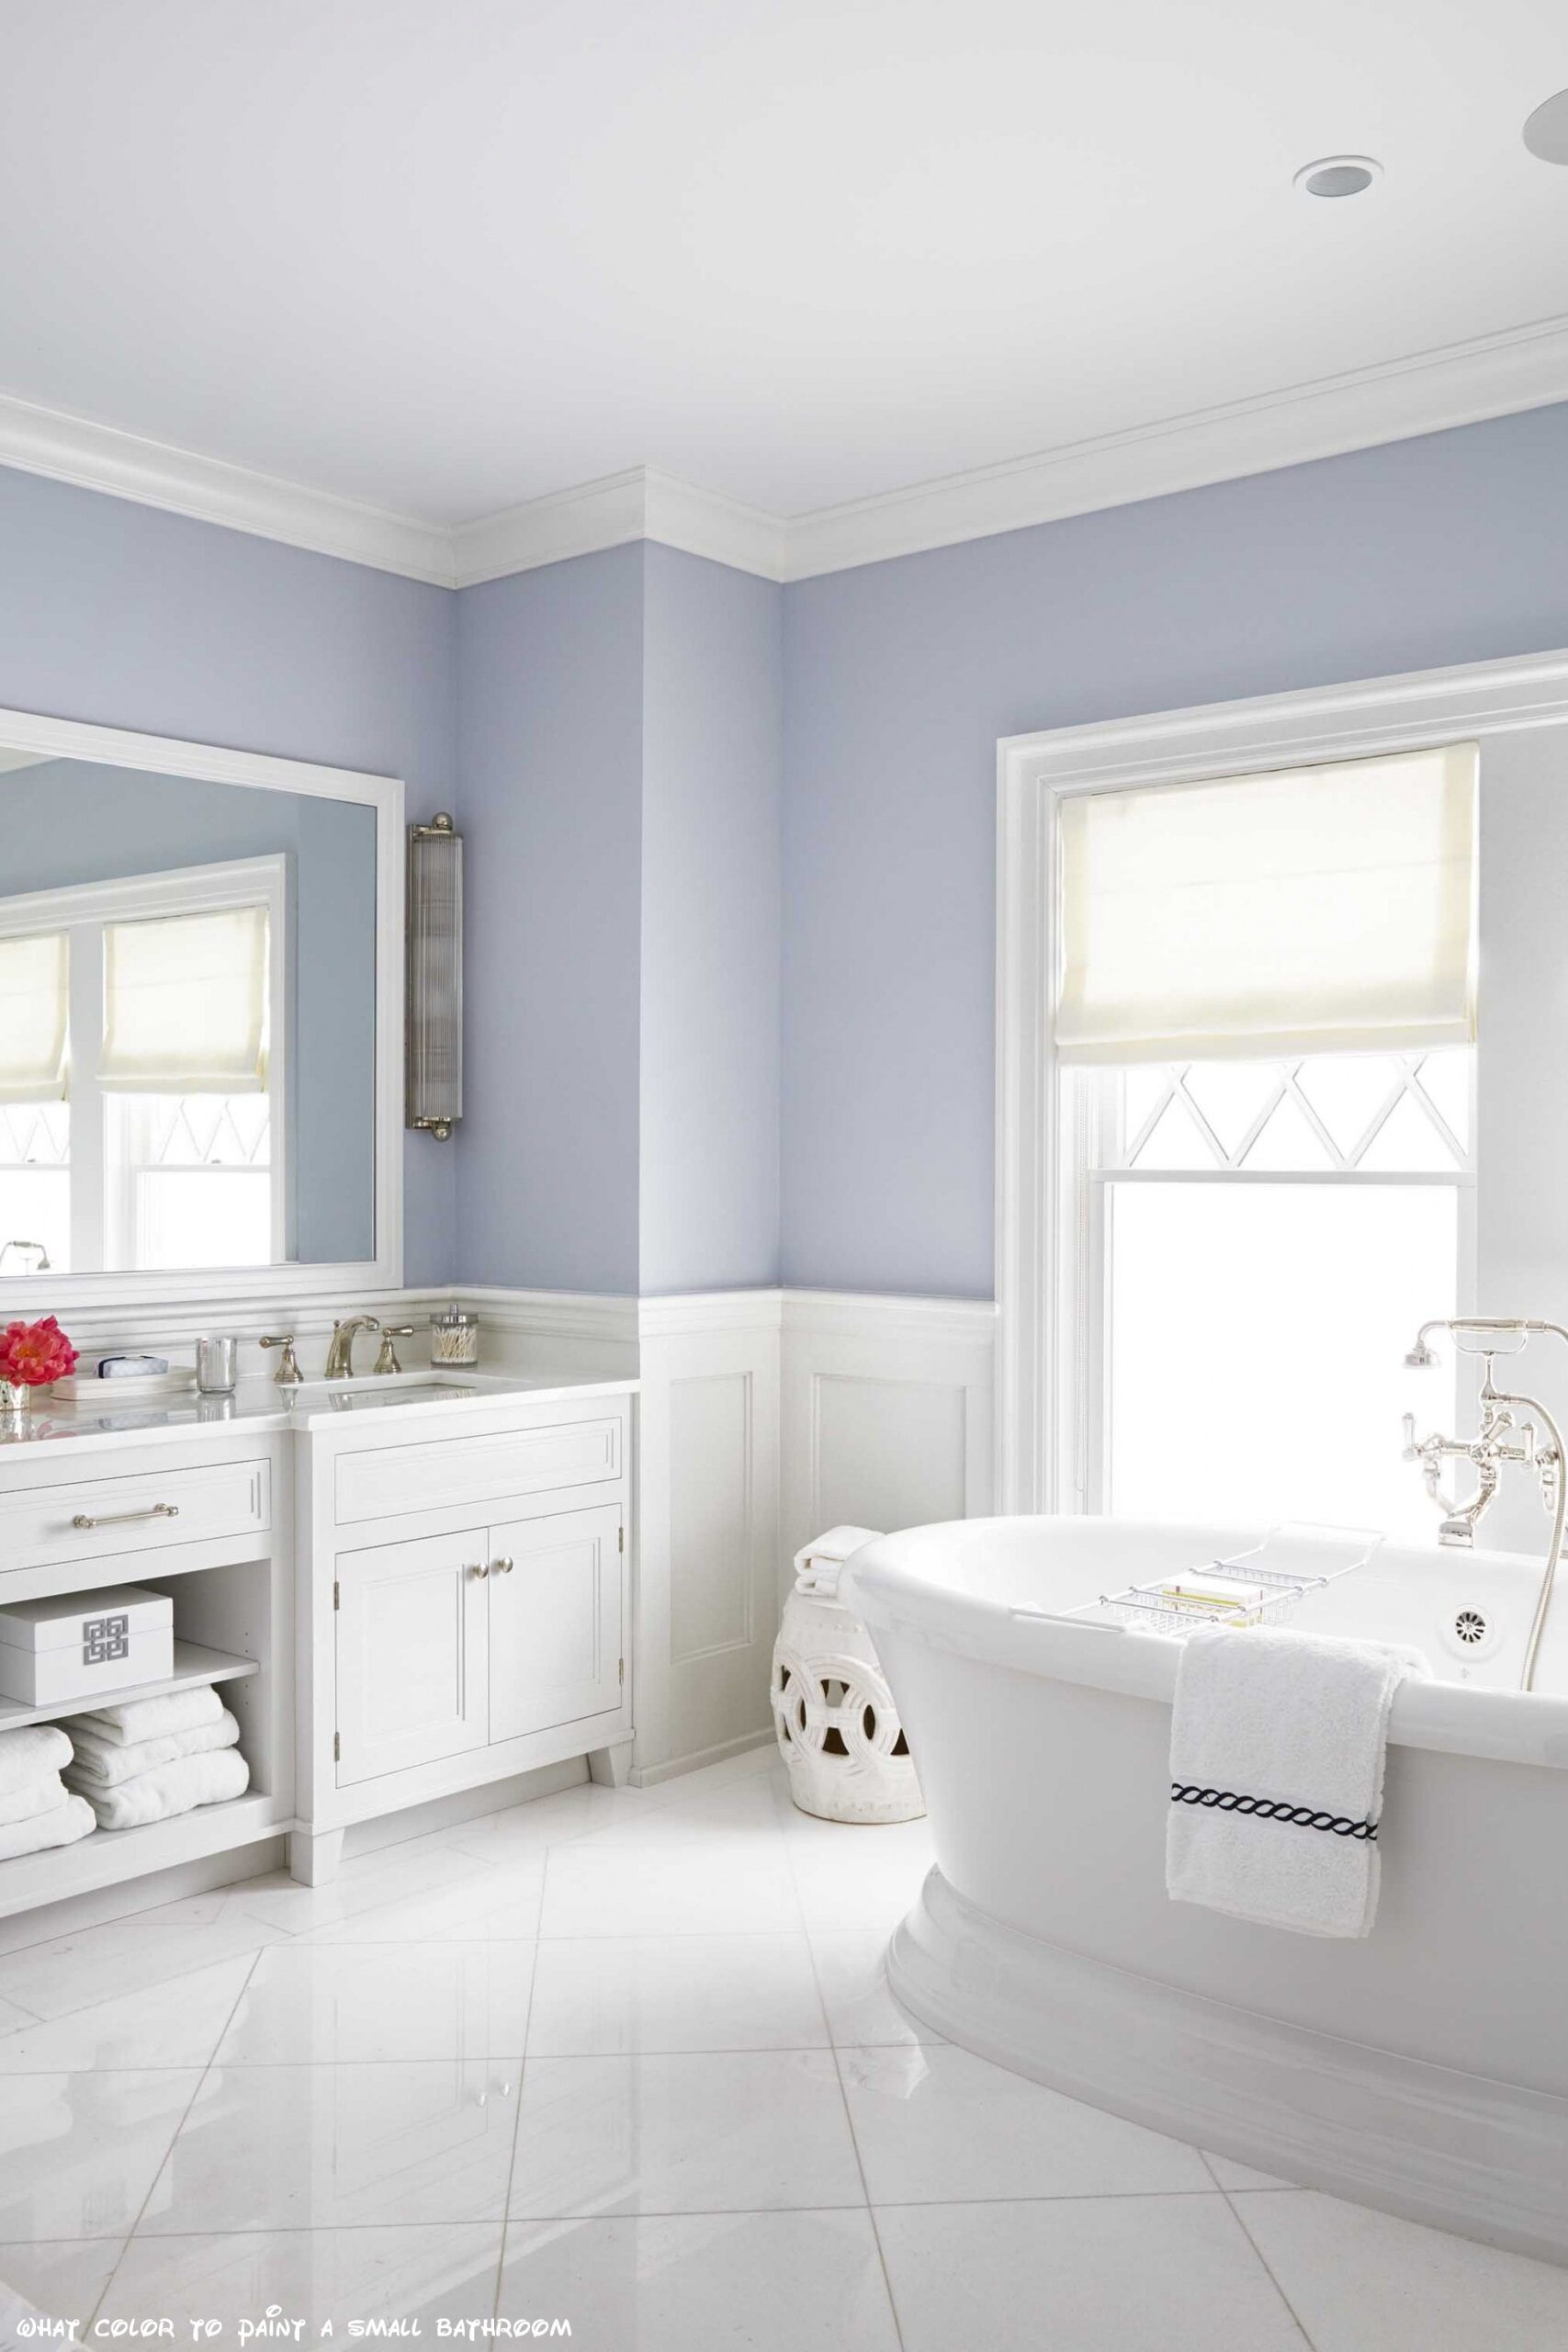 131 Admirable What Color To Paint A Small Bathroom In 2020 Small Bathroom Paint Colors Best Bathroom Paint Colors Bathroom Paint Colors